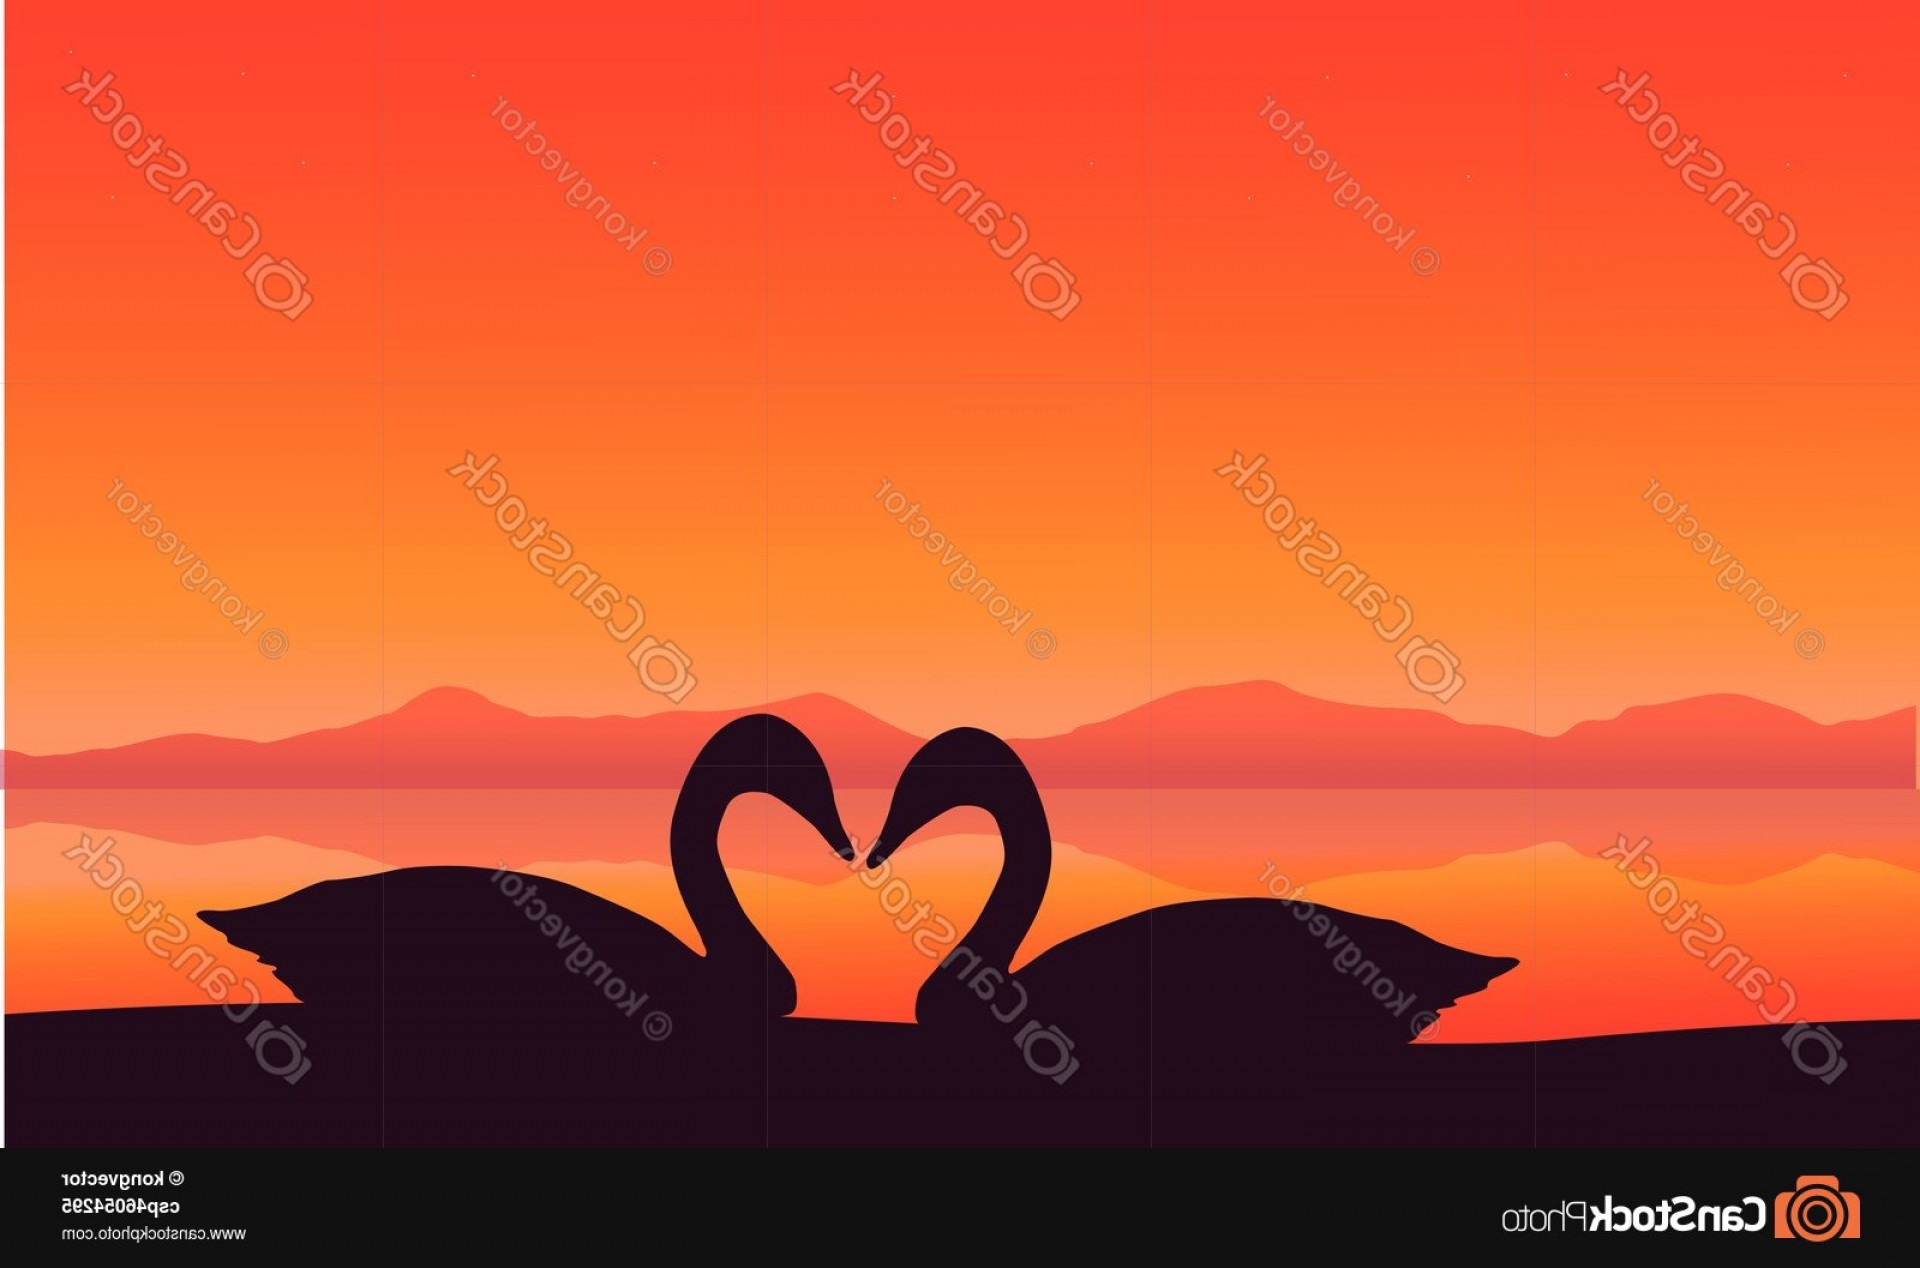 Swan Silhouette Vector: Silhouette Of Two Swan At Sunset Scenery